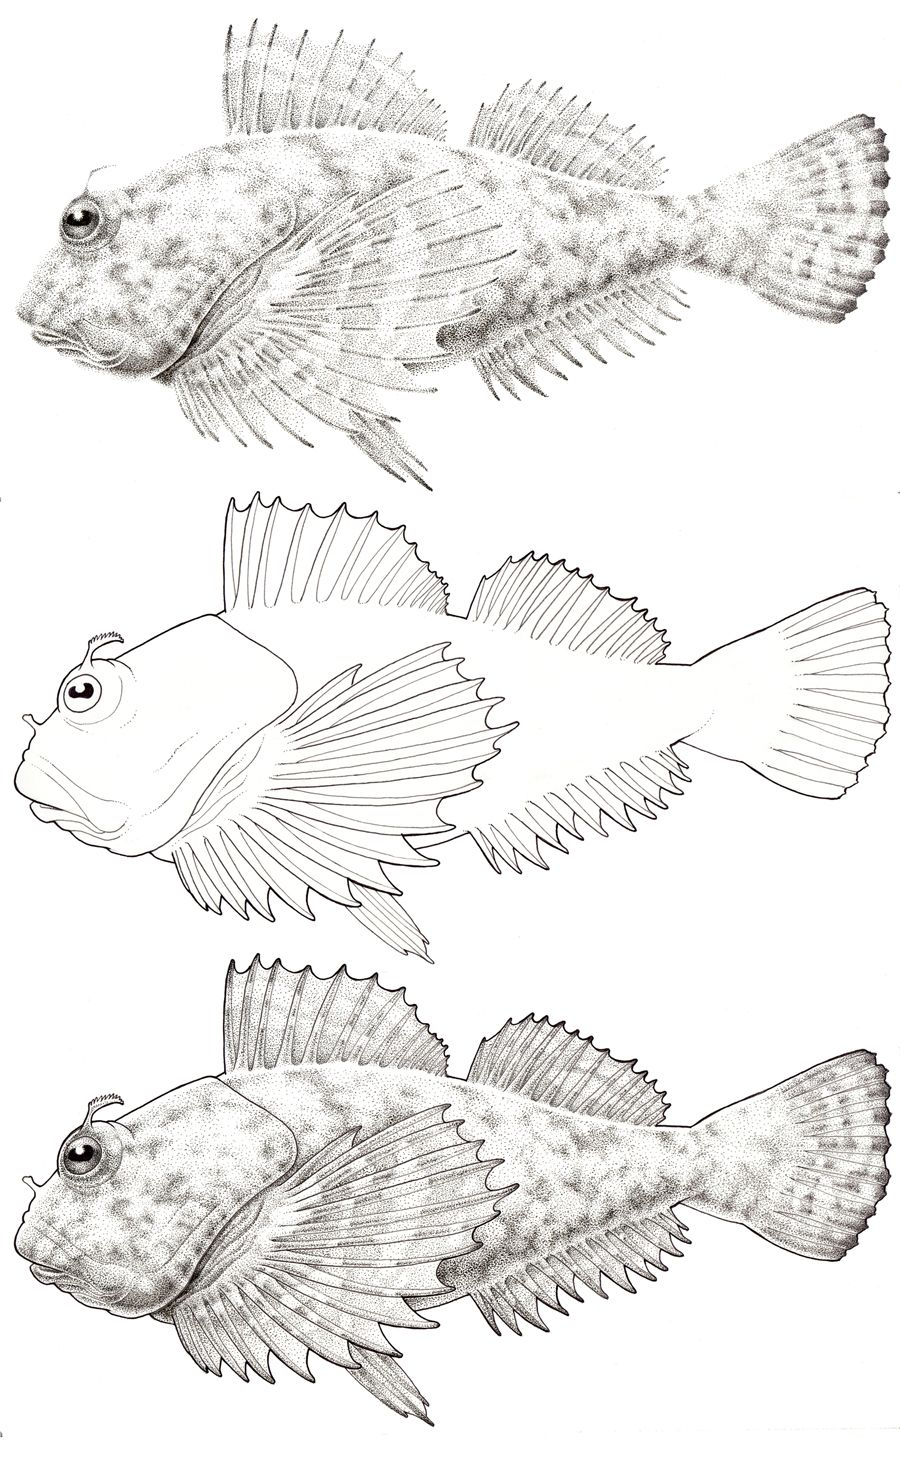 One fish two fish red fish blue fish coloring page az for One fish two fish red fish blue fish coloring page